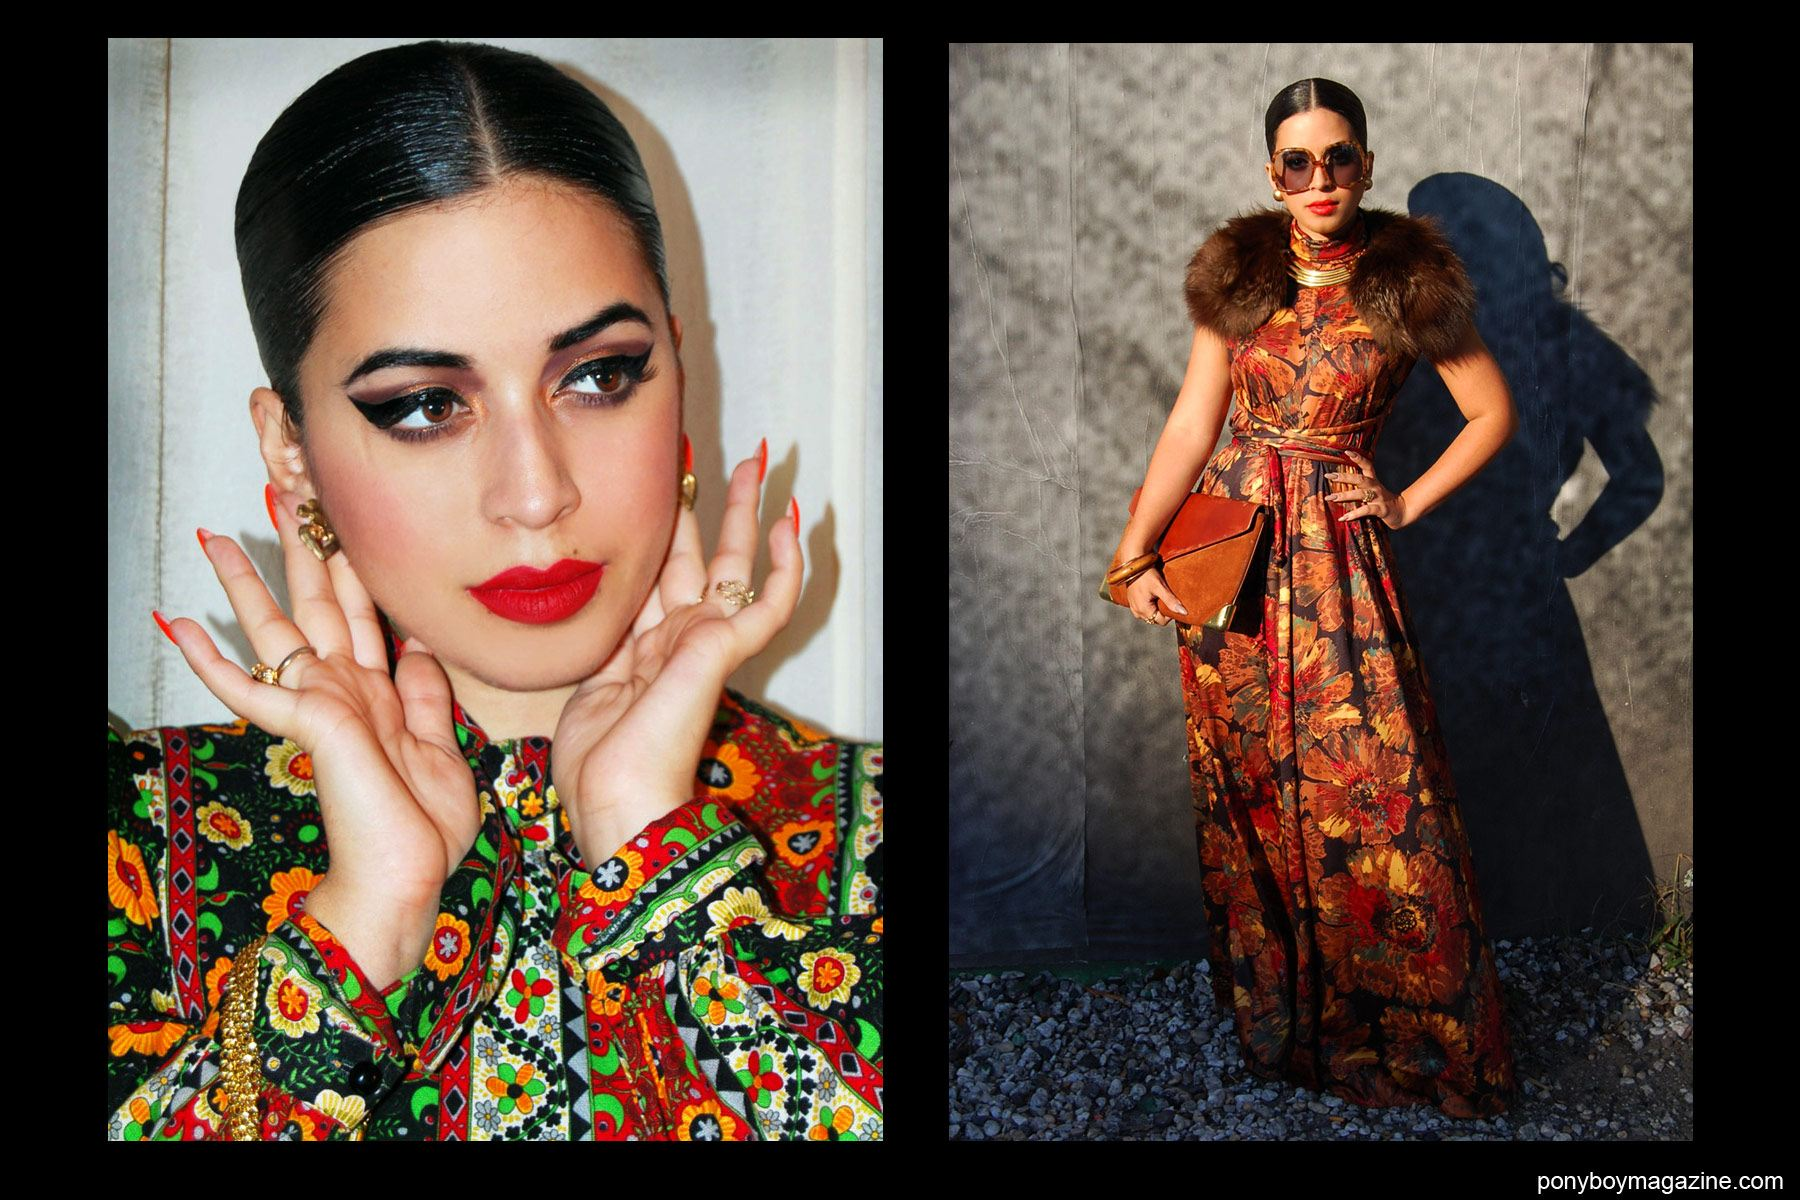 Jasmine Rodriguez, also known as Vintage Vandal, photographed in chic 70's inspired looks. Ponyboy Magazine New York.